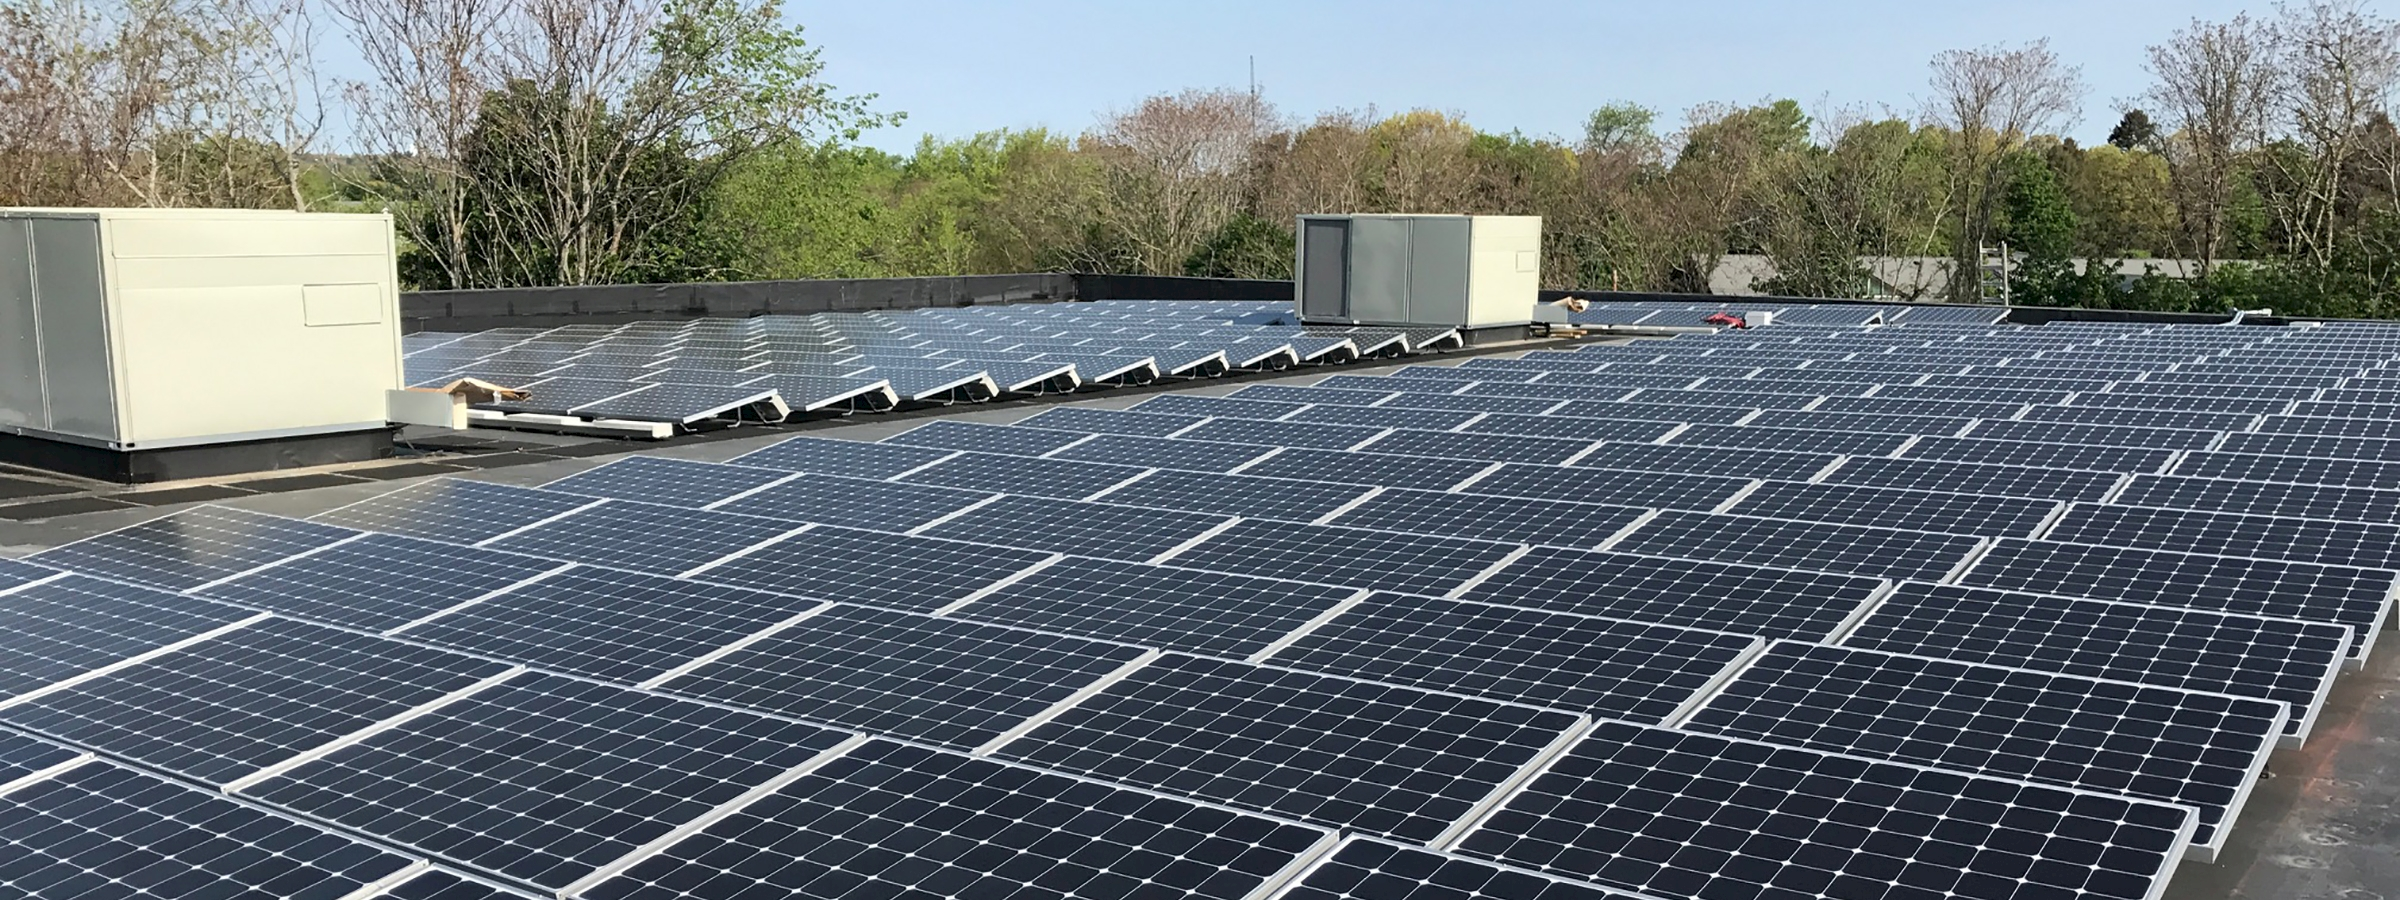 Boston Solar Provides Solar Panel System to the Woburn Boys and Girls Club